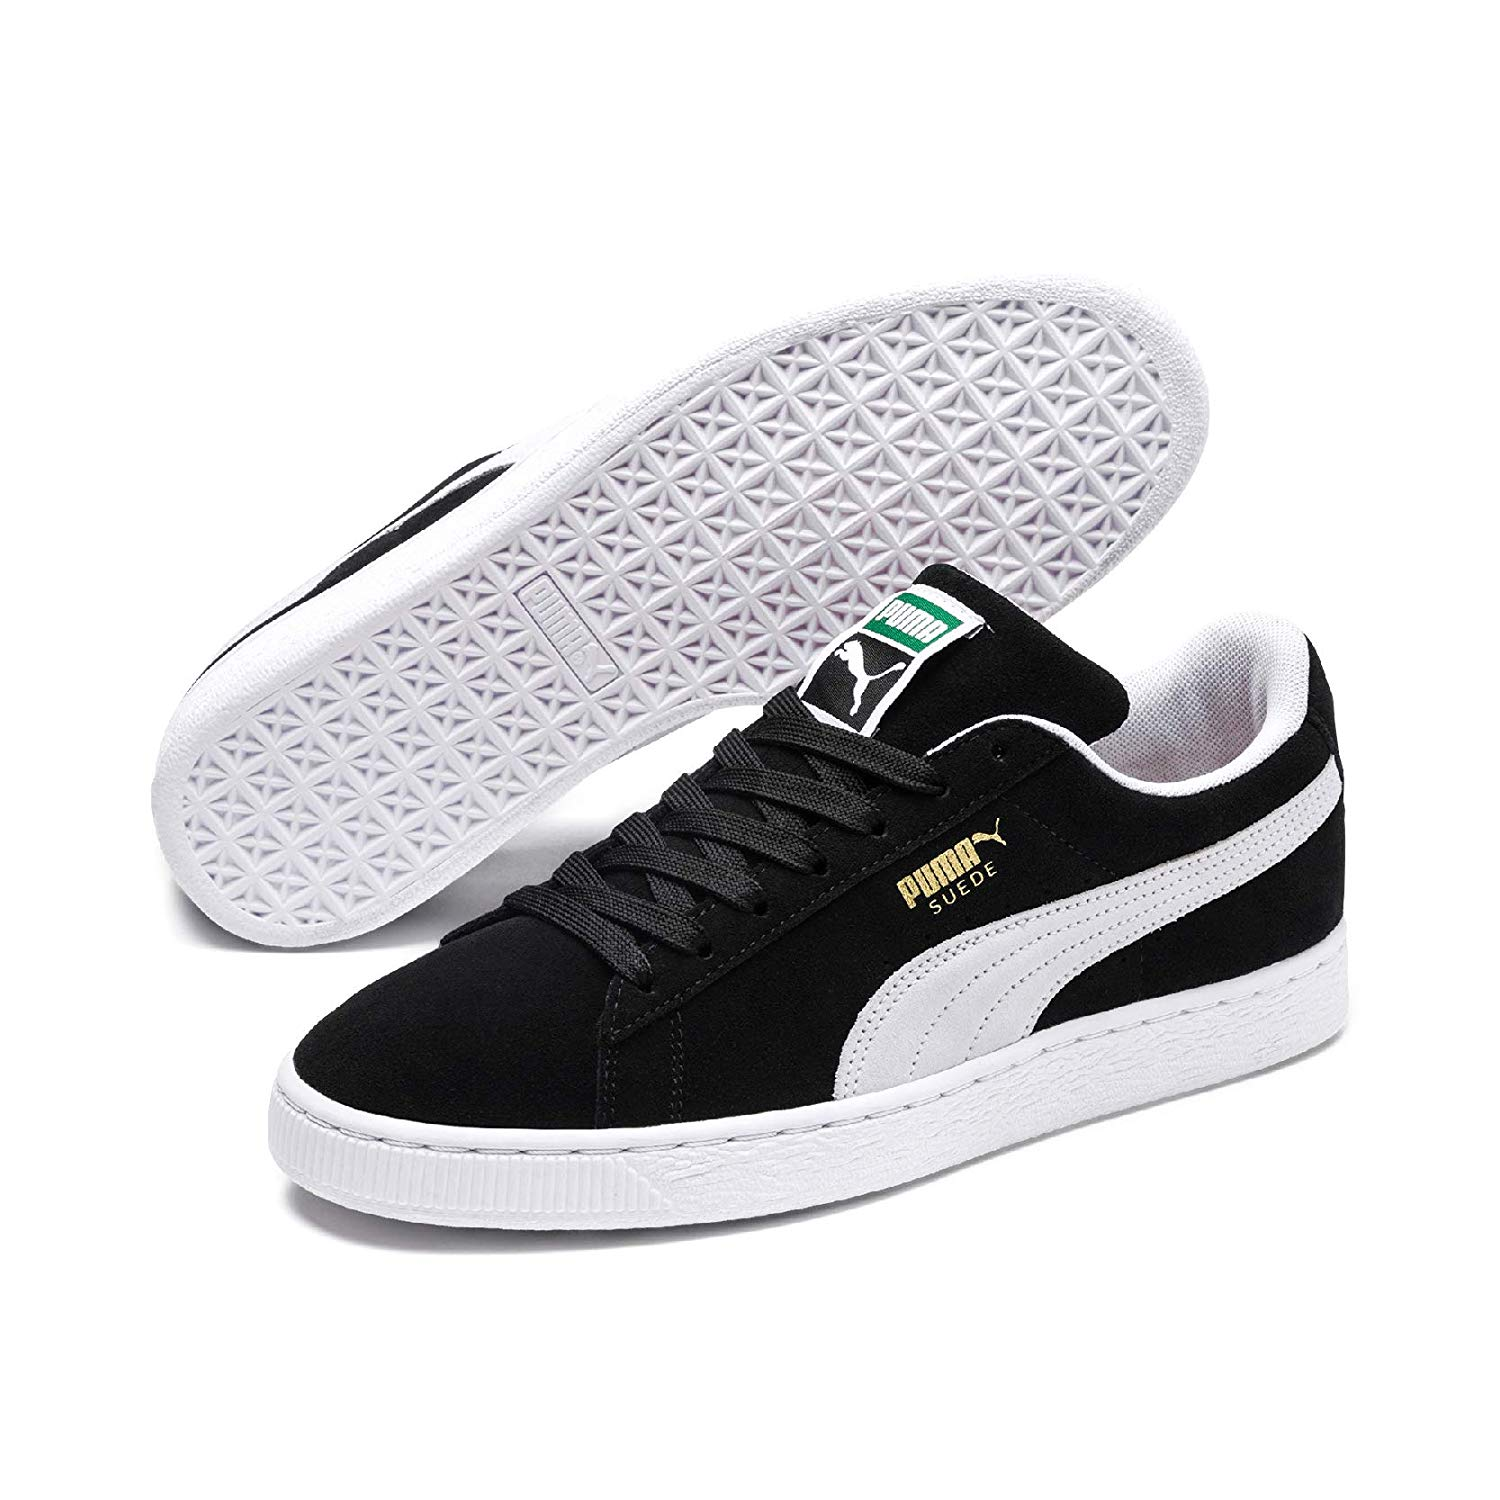 Details about Puma Mens Suede Black Sole Leather Low Top Lace Up,  Black/White, Size 9.0 PMhK